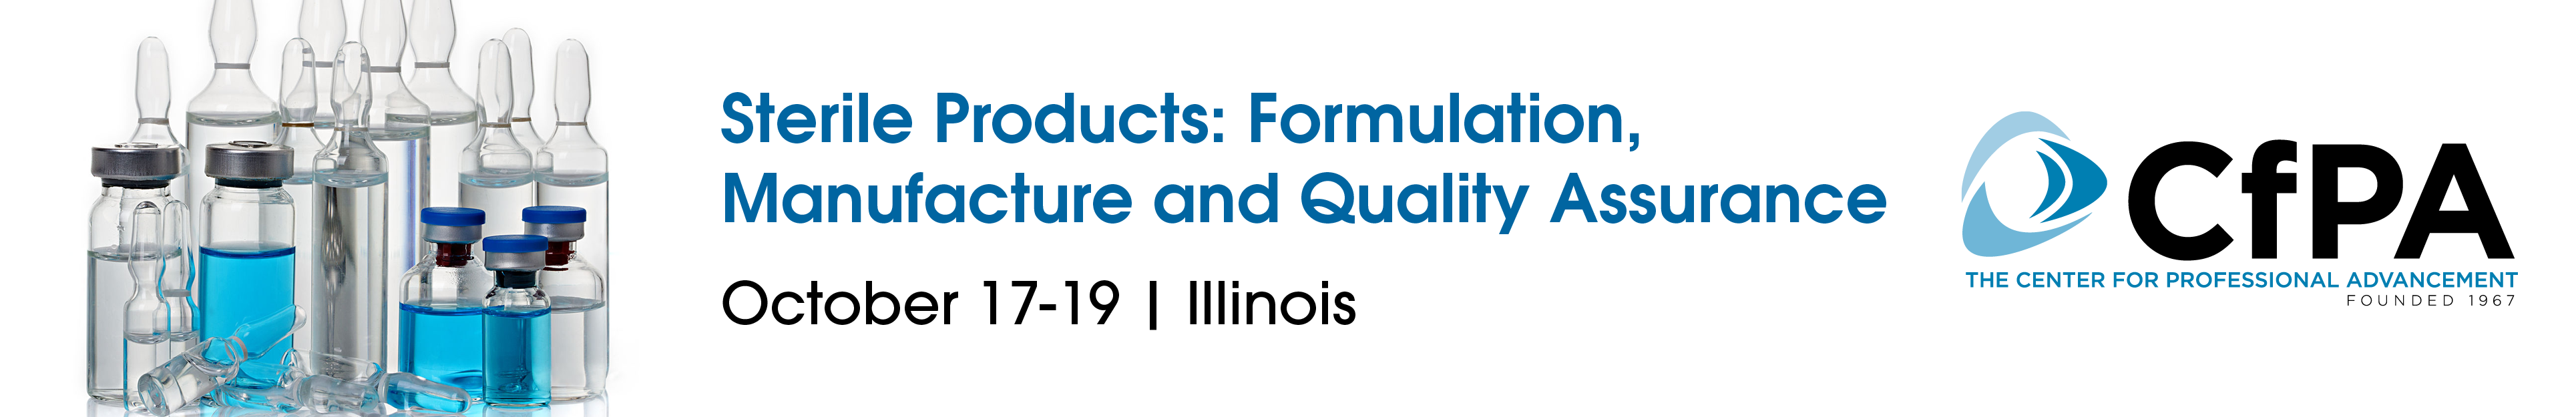 Sterile Products: Formulation, Manufacture and Quality Assurance